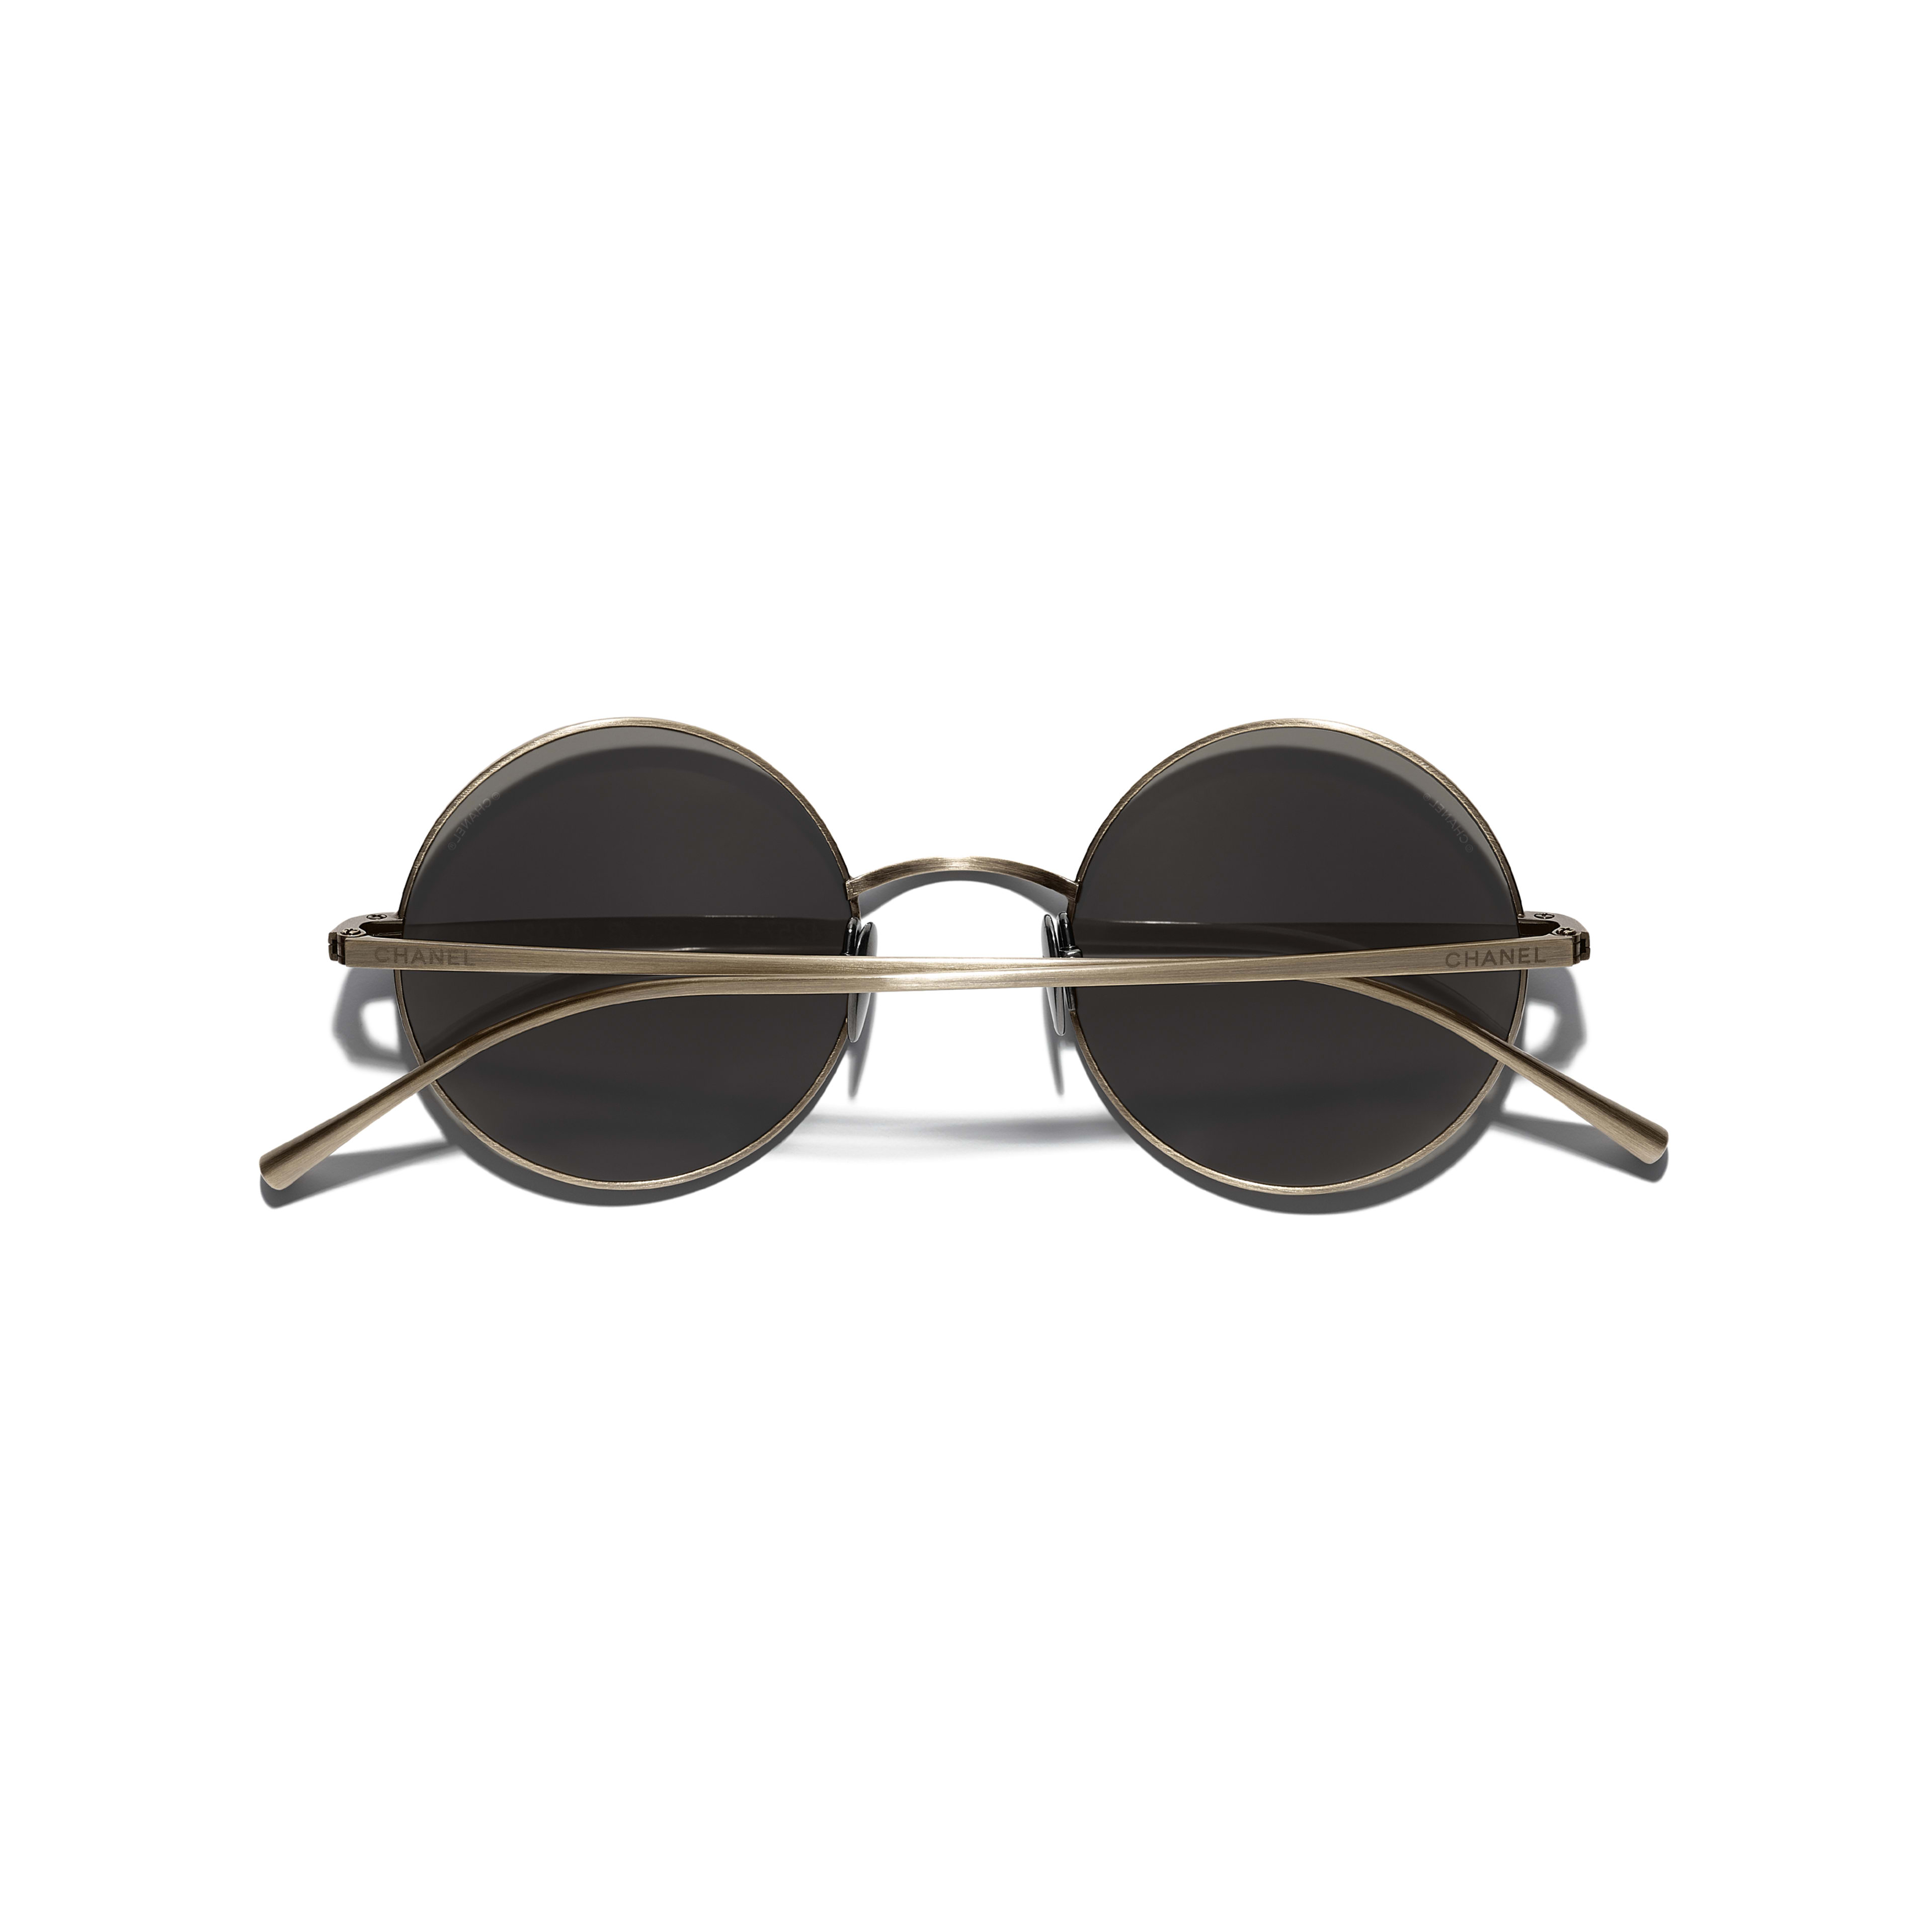 Round Sunglasses - Gold - Titanium - Extra view - see full sized version